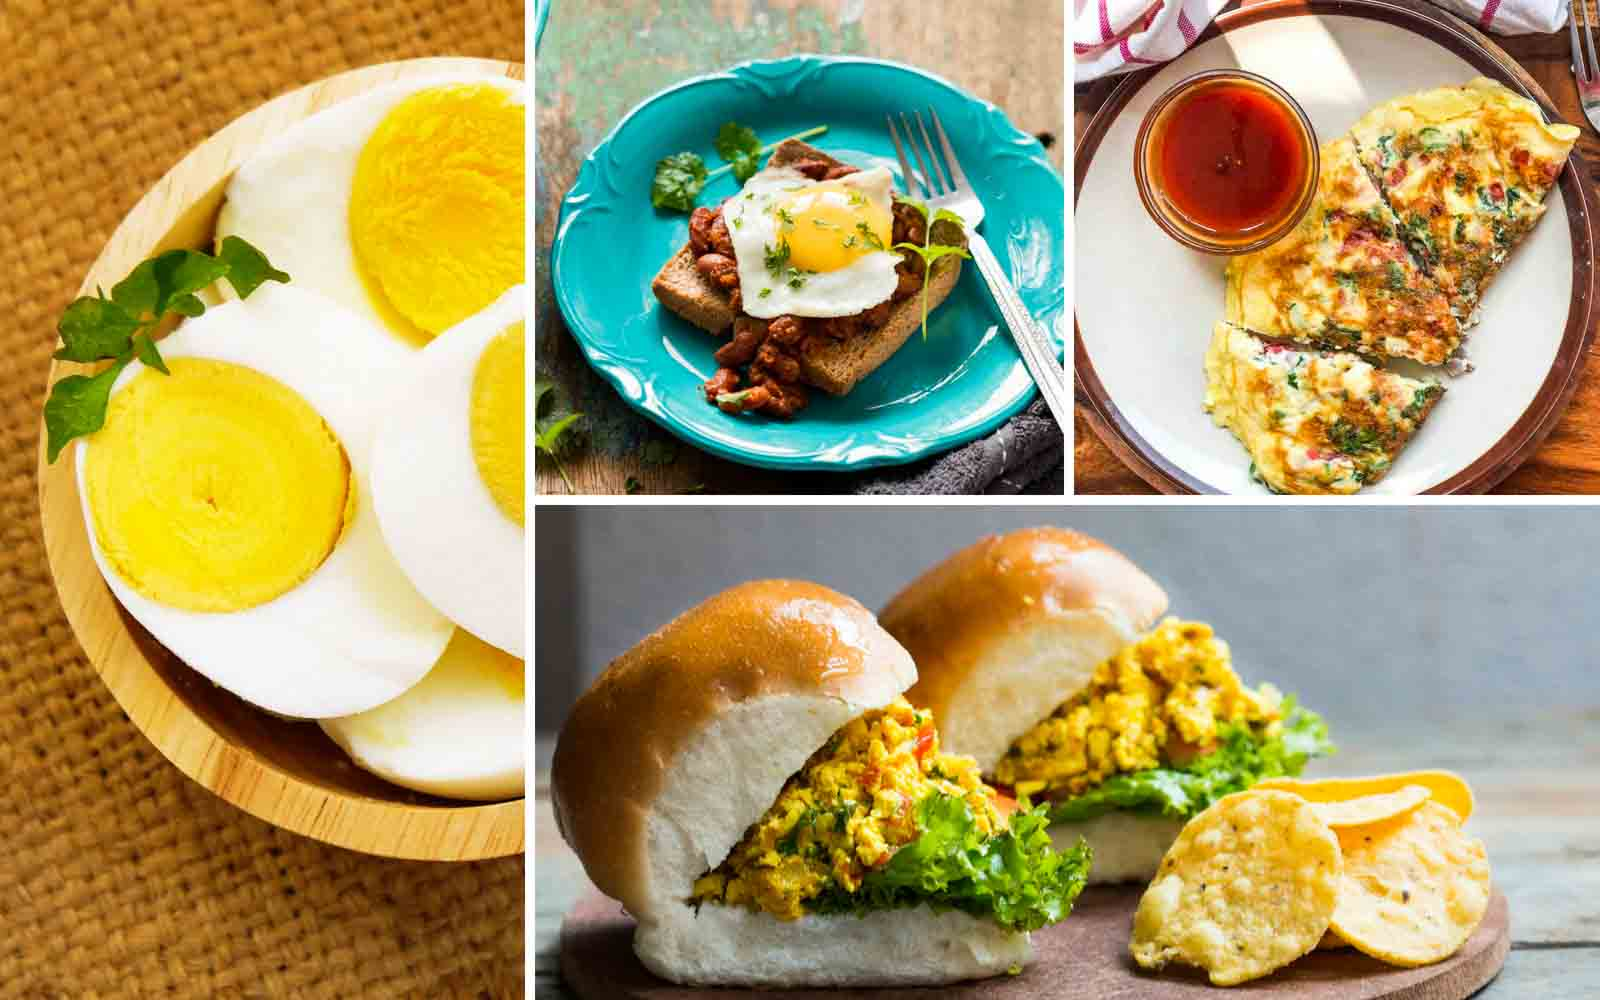 5 Ways You Can Use Eggs To Create Delicious Breakfast Meals